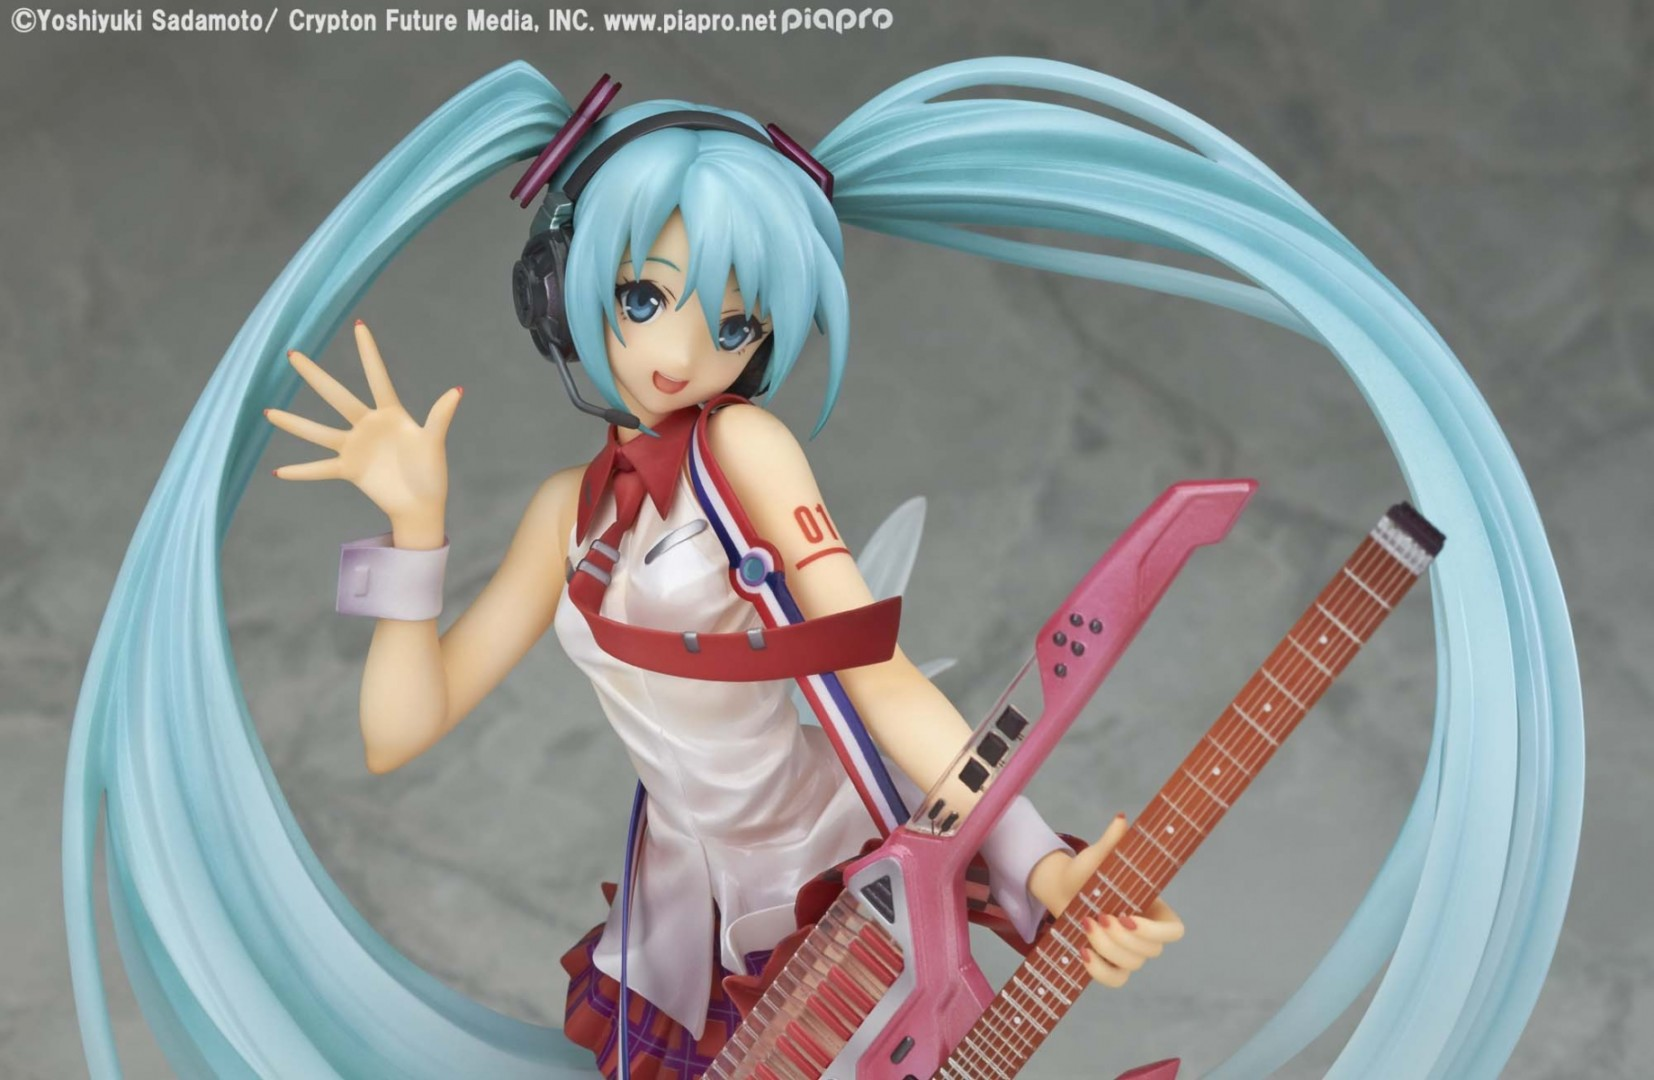 Hatsune Miku: Greatest Idol Ver. - Vocaloid 1/8 Complete Figure